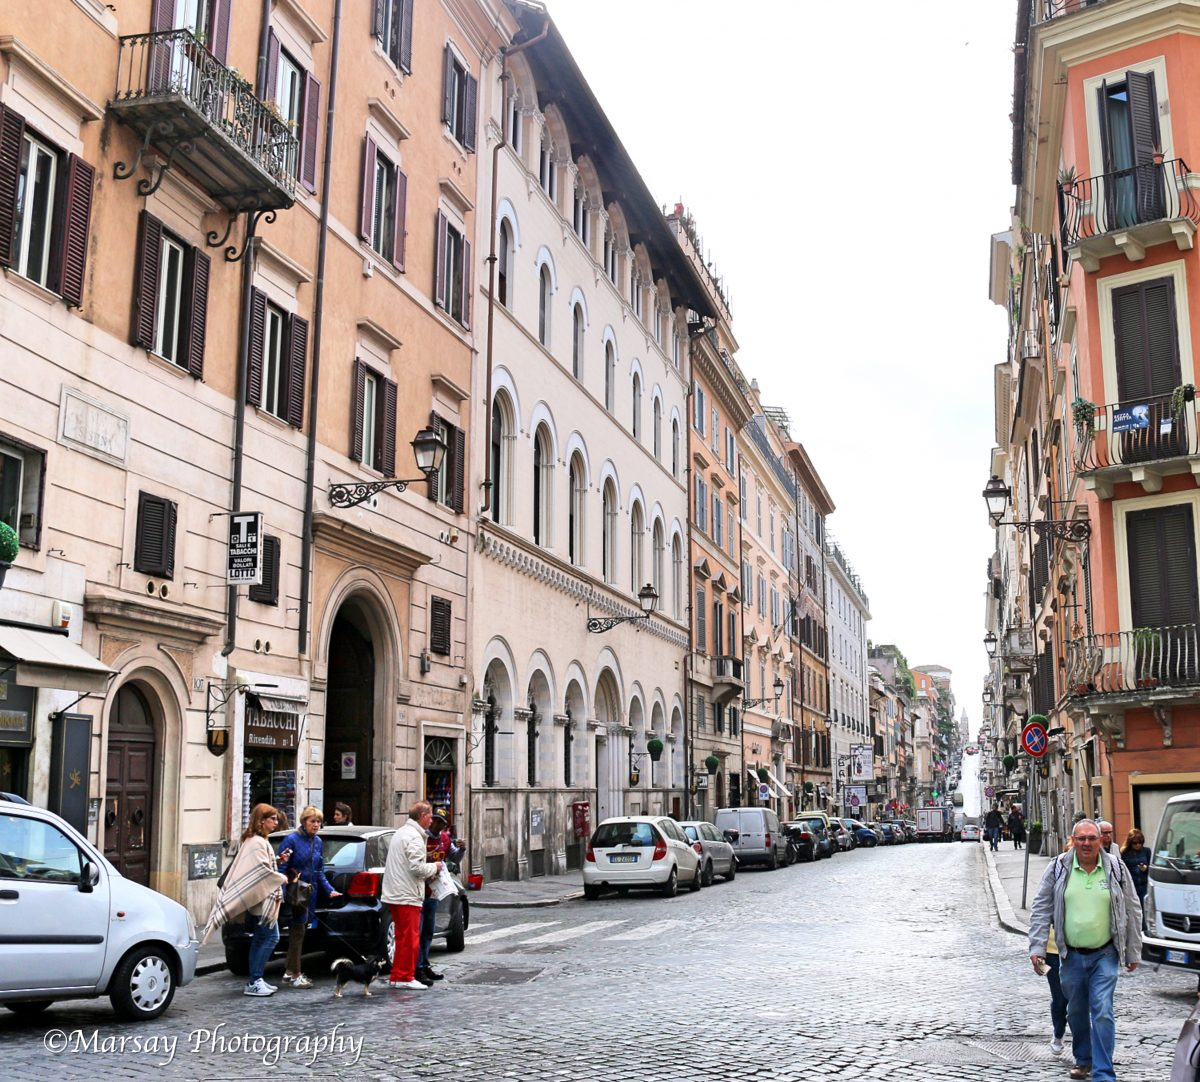 Rows and rows of Buildings, crammed onto more cobbled streets in Rome